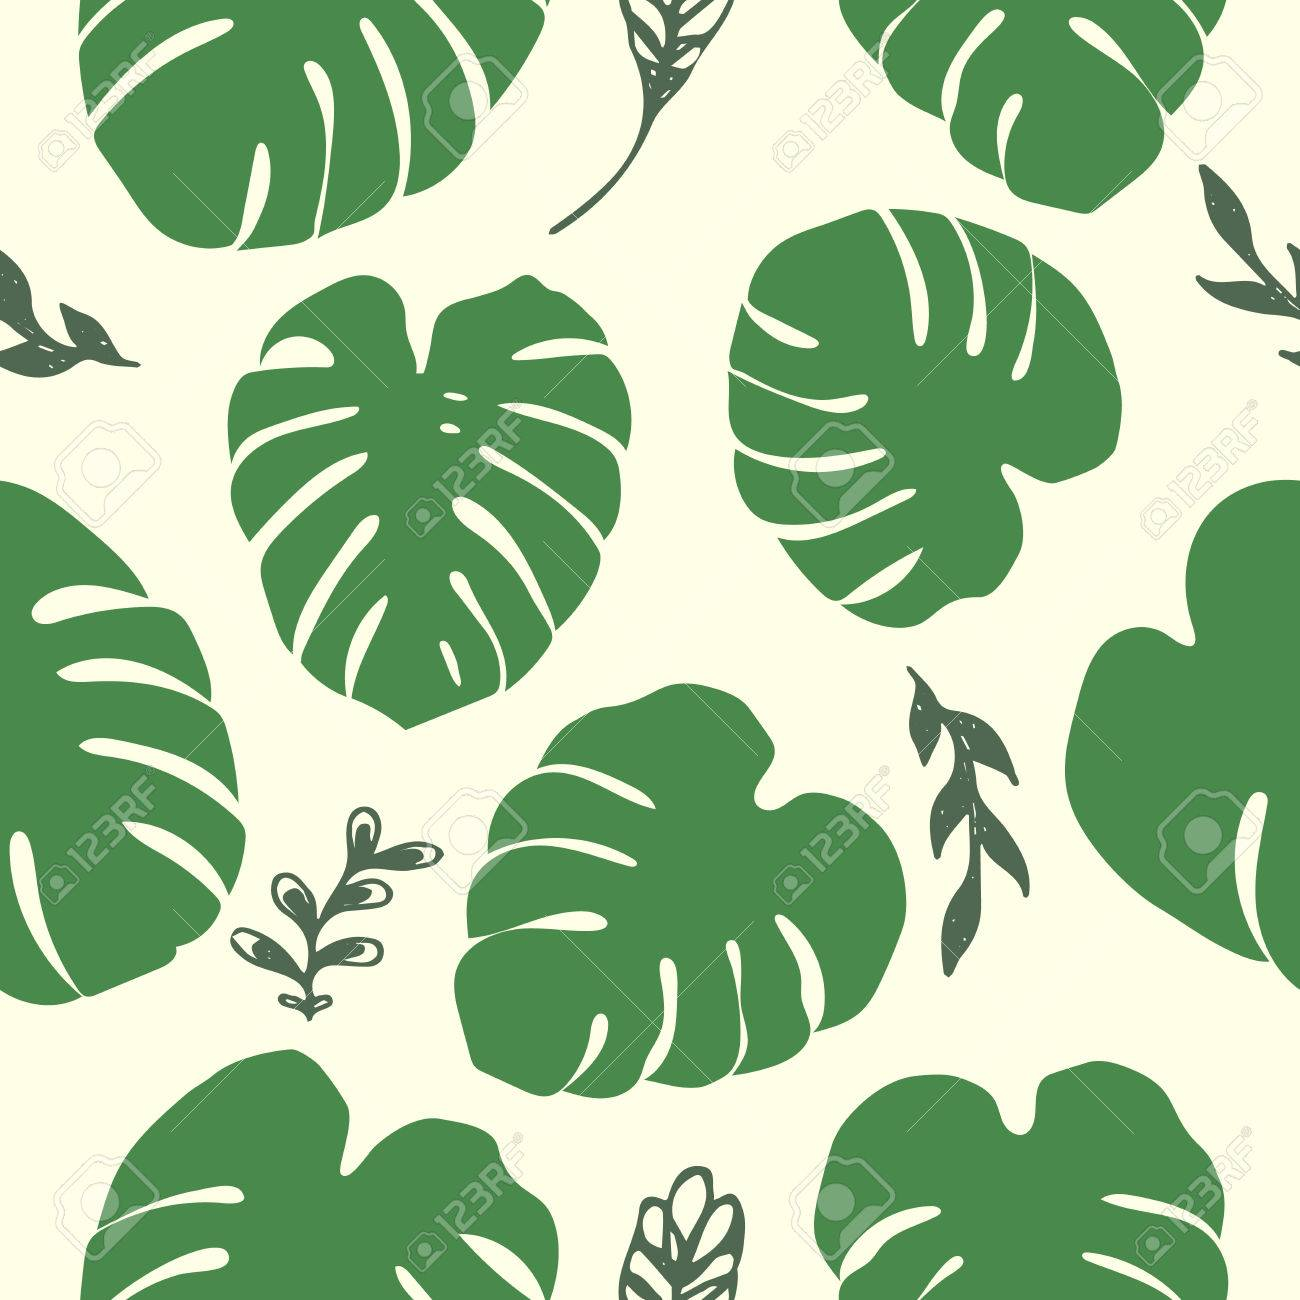 Green Tropical Monstera Leaves Seamless Pattern Unique Plant Royalty Free Cliparts Vectors And Stock Illustration Image 76736886